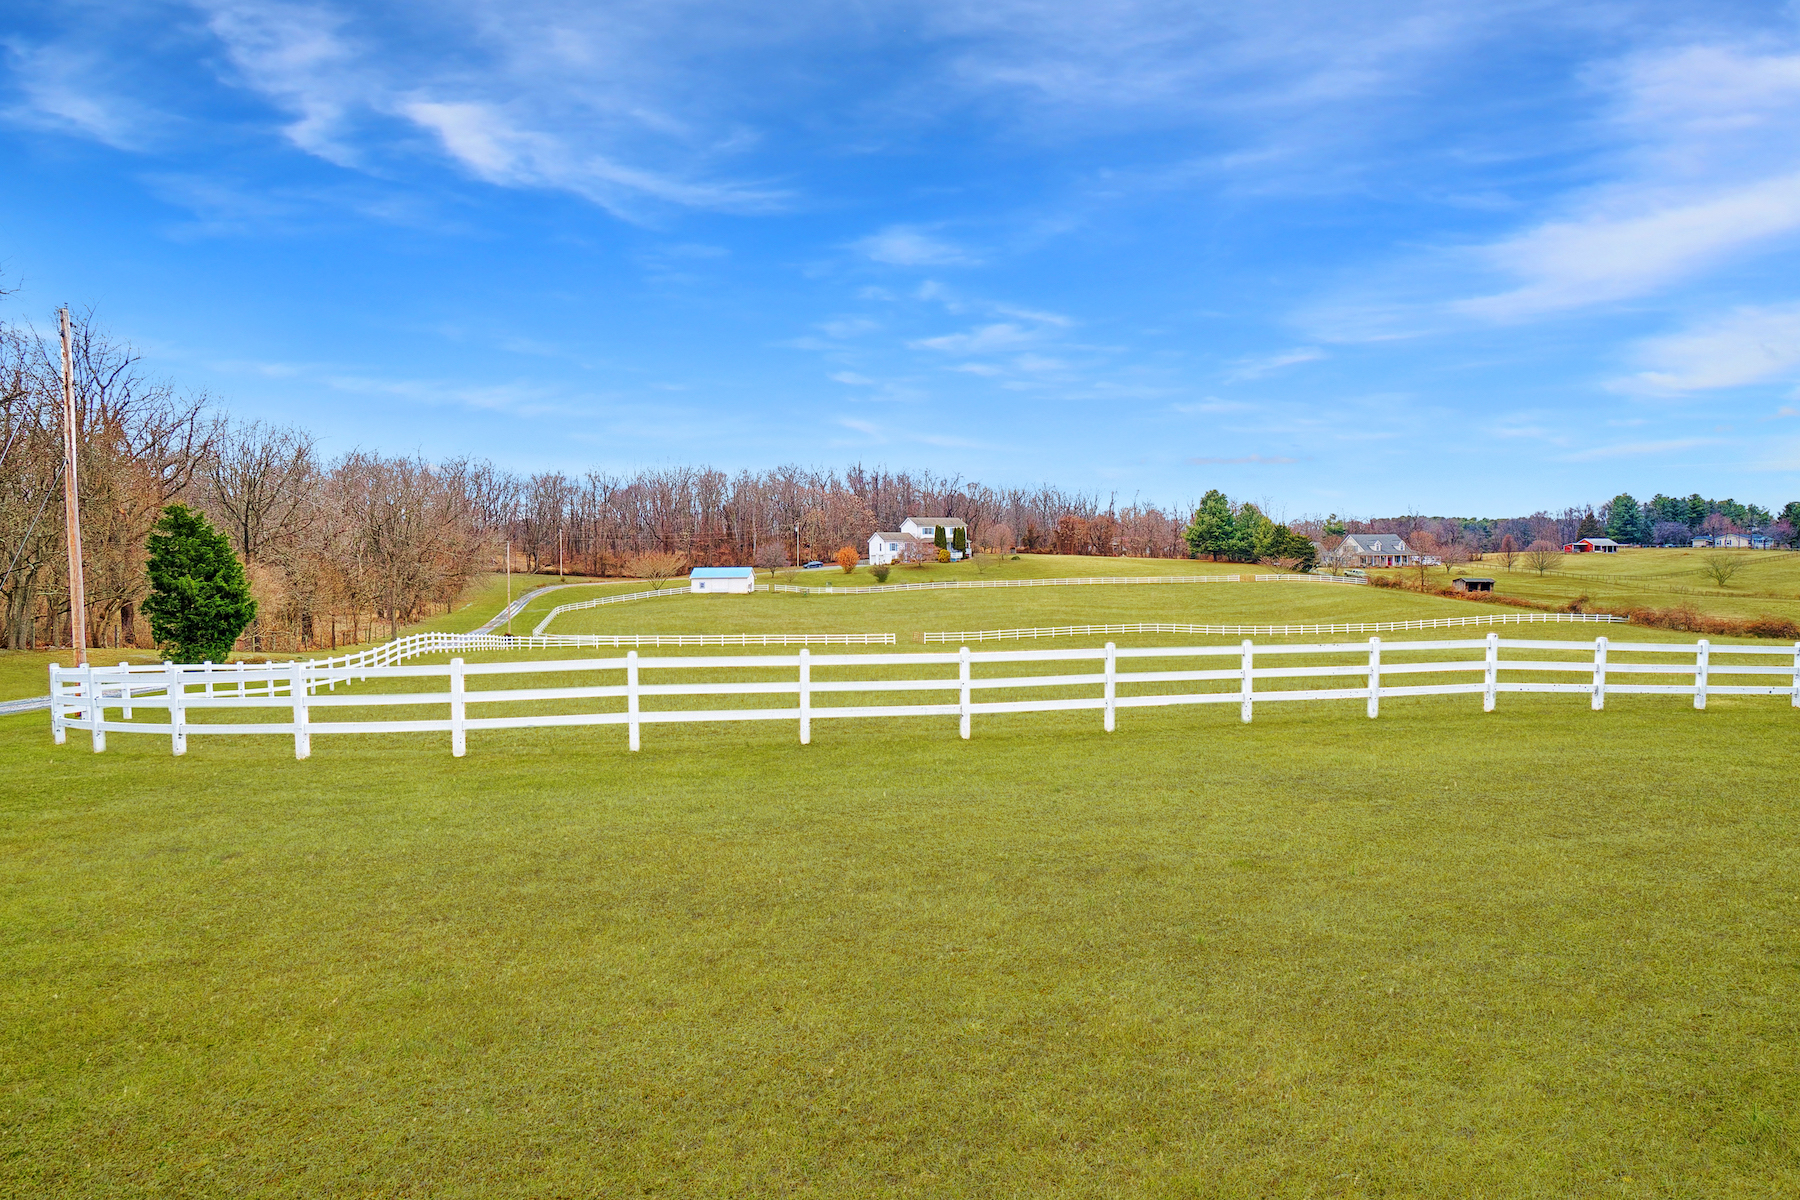 Single Family Home for Sale at Hestelund 600 Chestnut Lane Berryville, Virginia 22611 United States